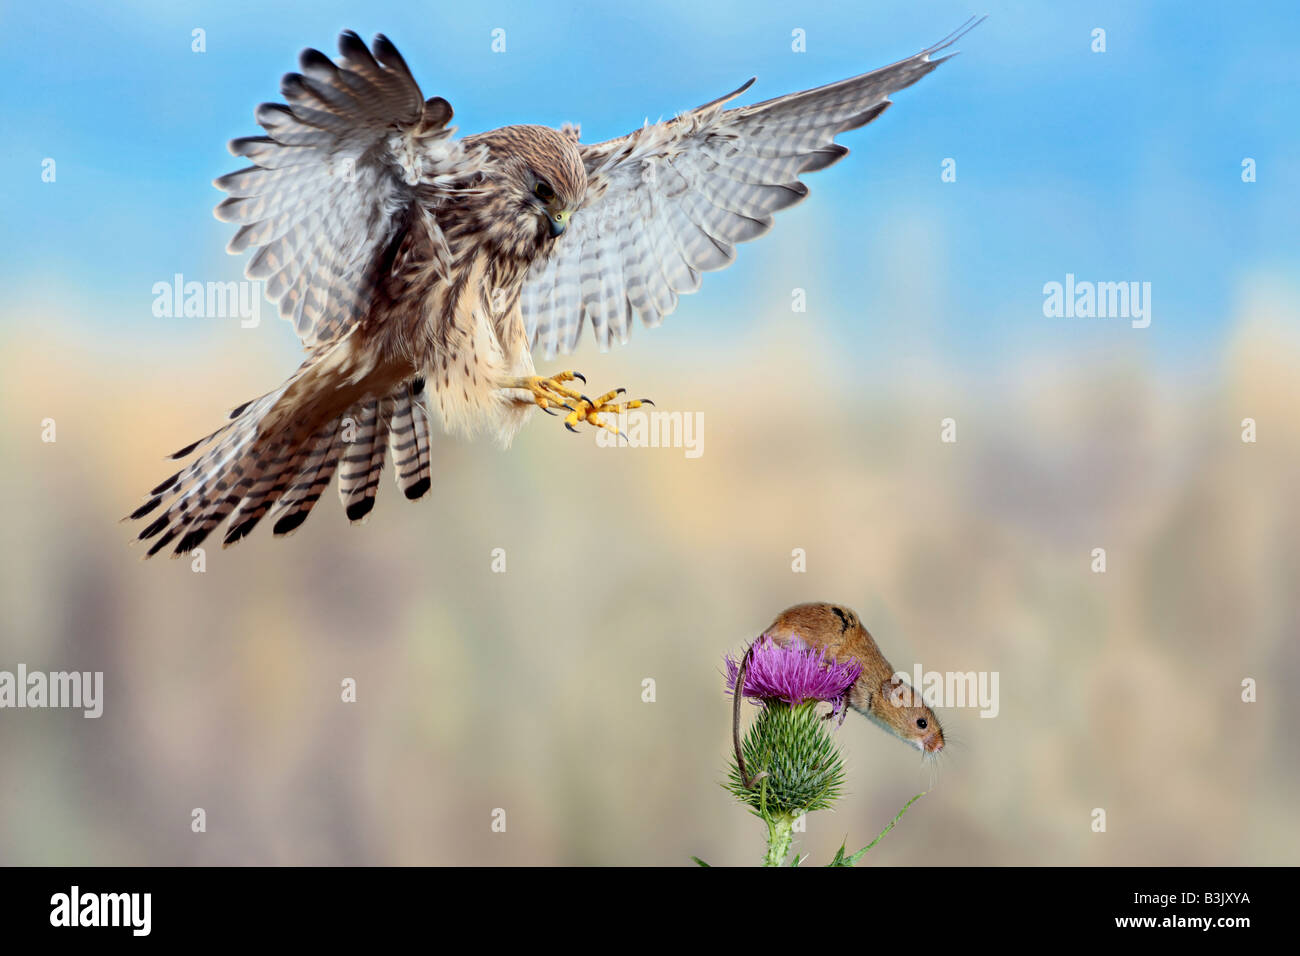 Kestrel Falco tinnunculus à propos de prendre la souris récolte Bedfordshire Potton Photo Stock